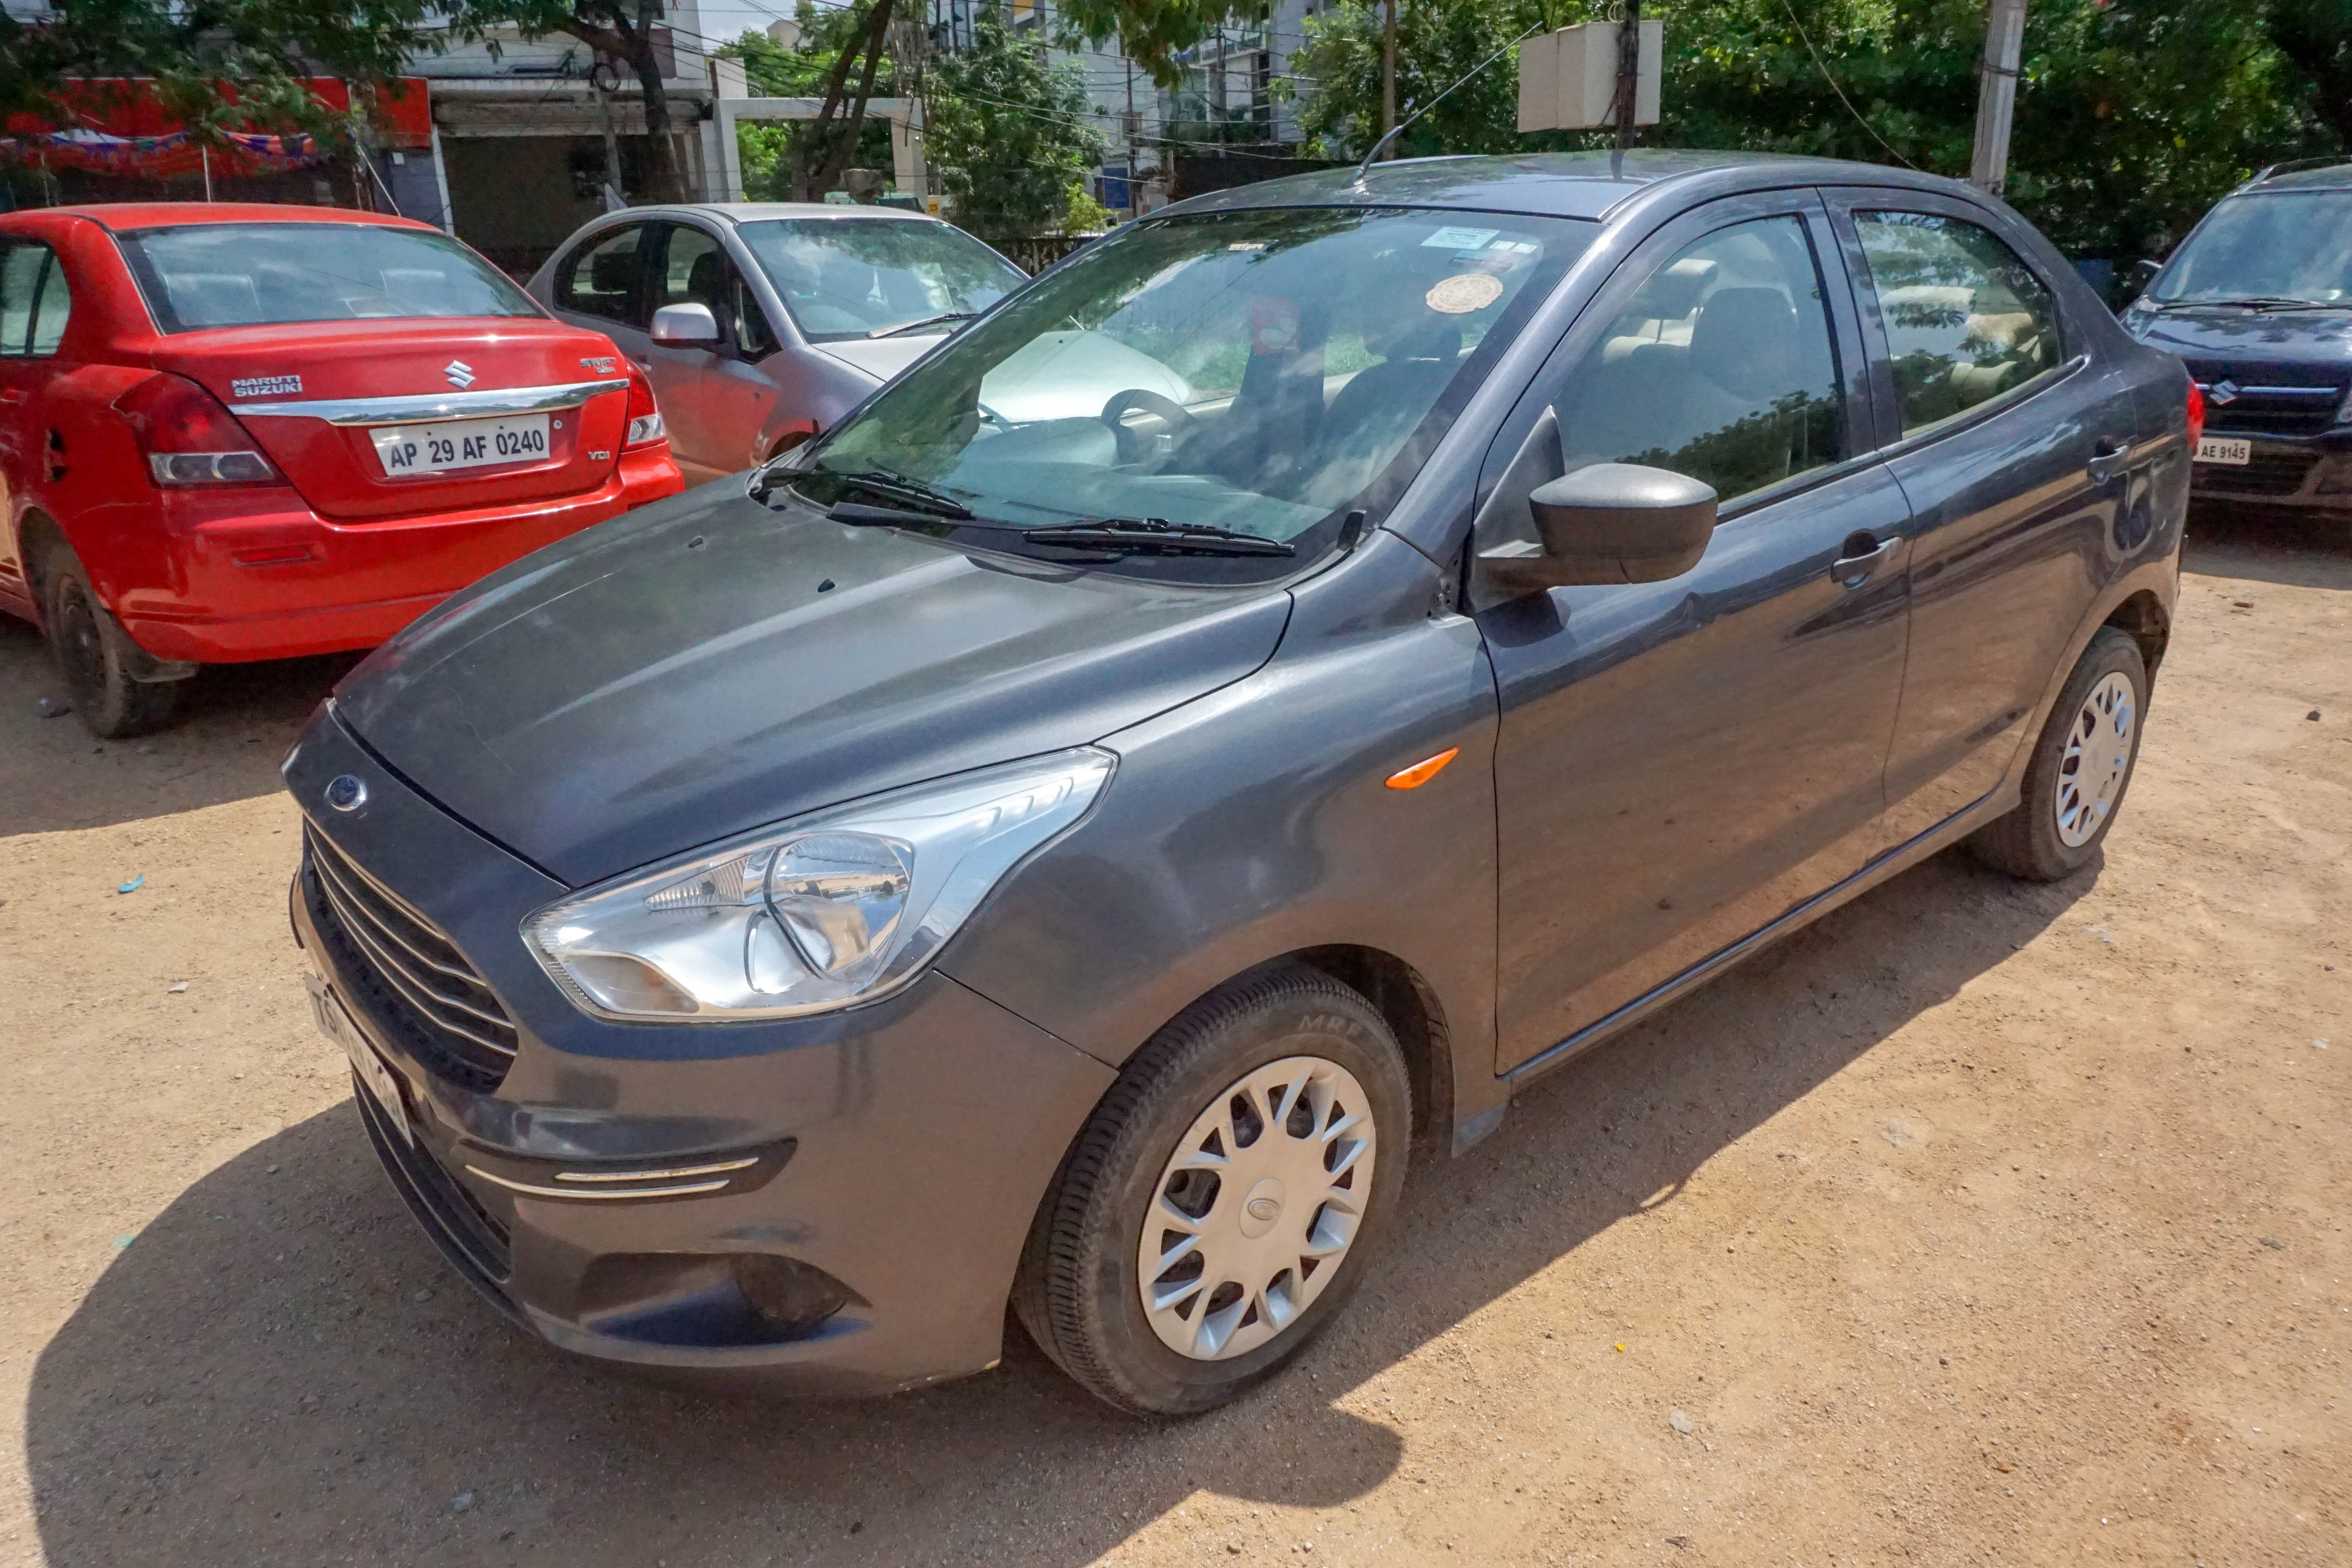 Buy Verified Second Hand Cars In Hyderabad Used Cars For Sale Carandbike